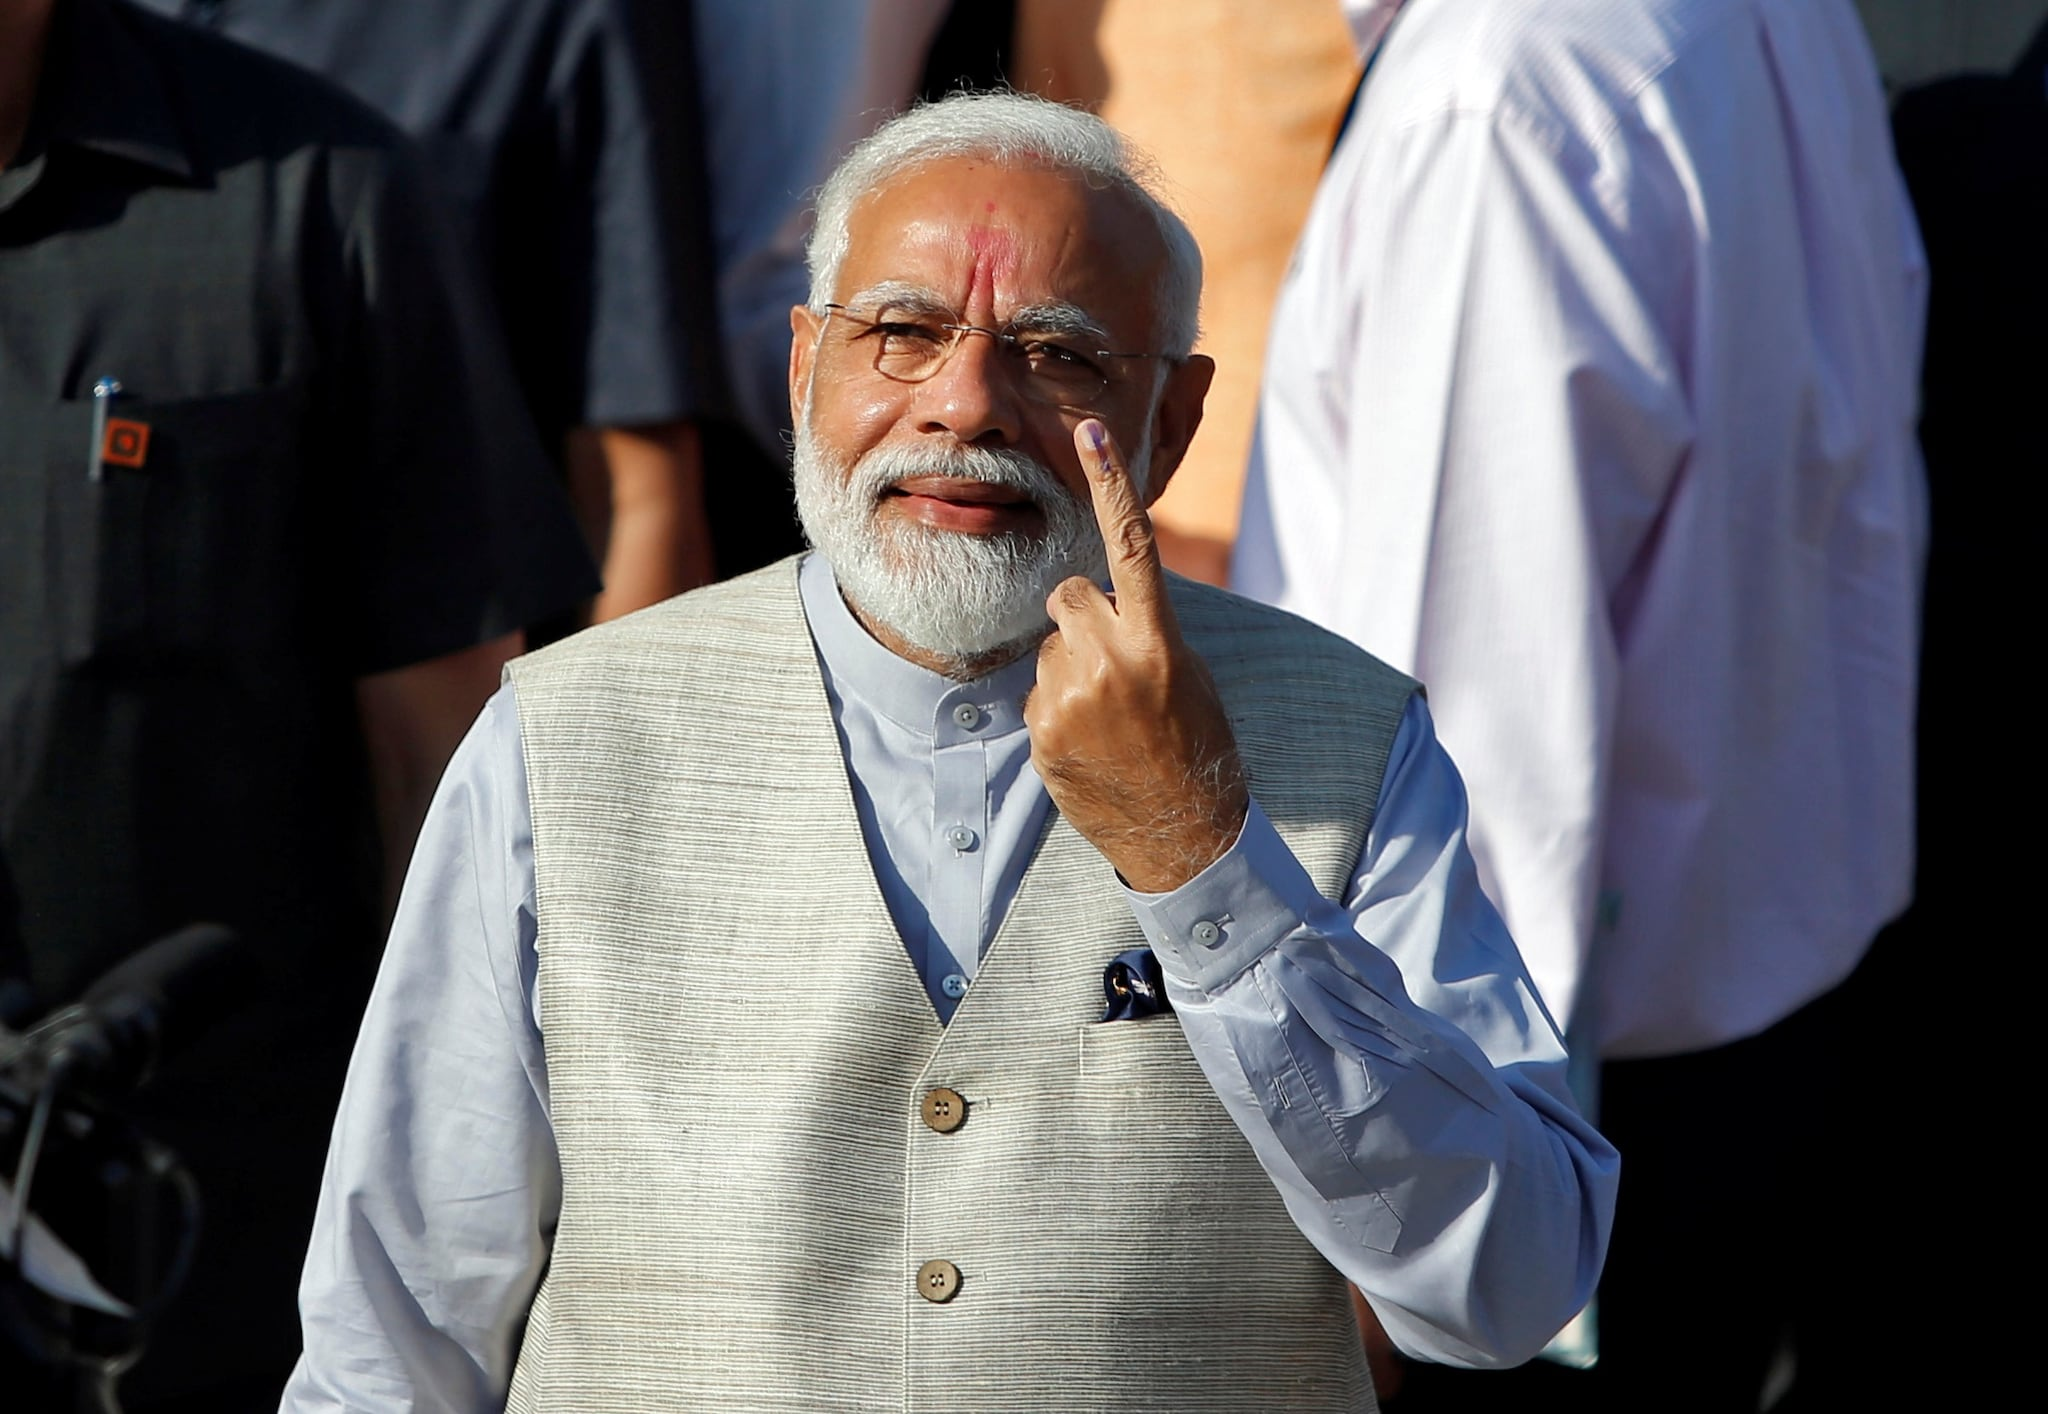 Prime Minister Narendra Modi shows his ink-marked finger after casting his vote outside a polling station during the third phase of general election in Ahmedabad, April 23, 2019. REUTERS/Amit Dave